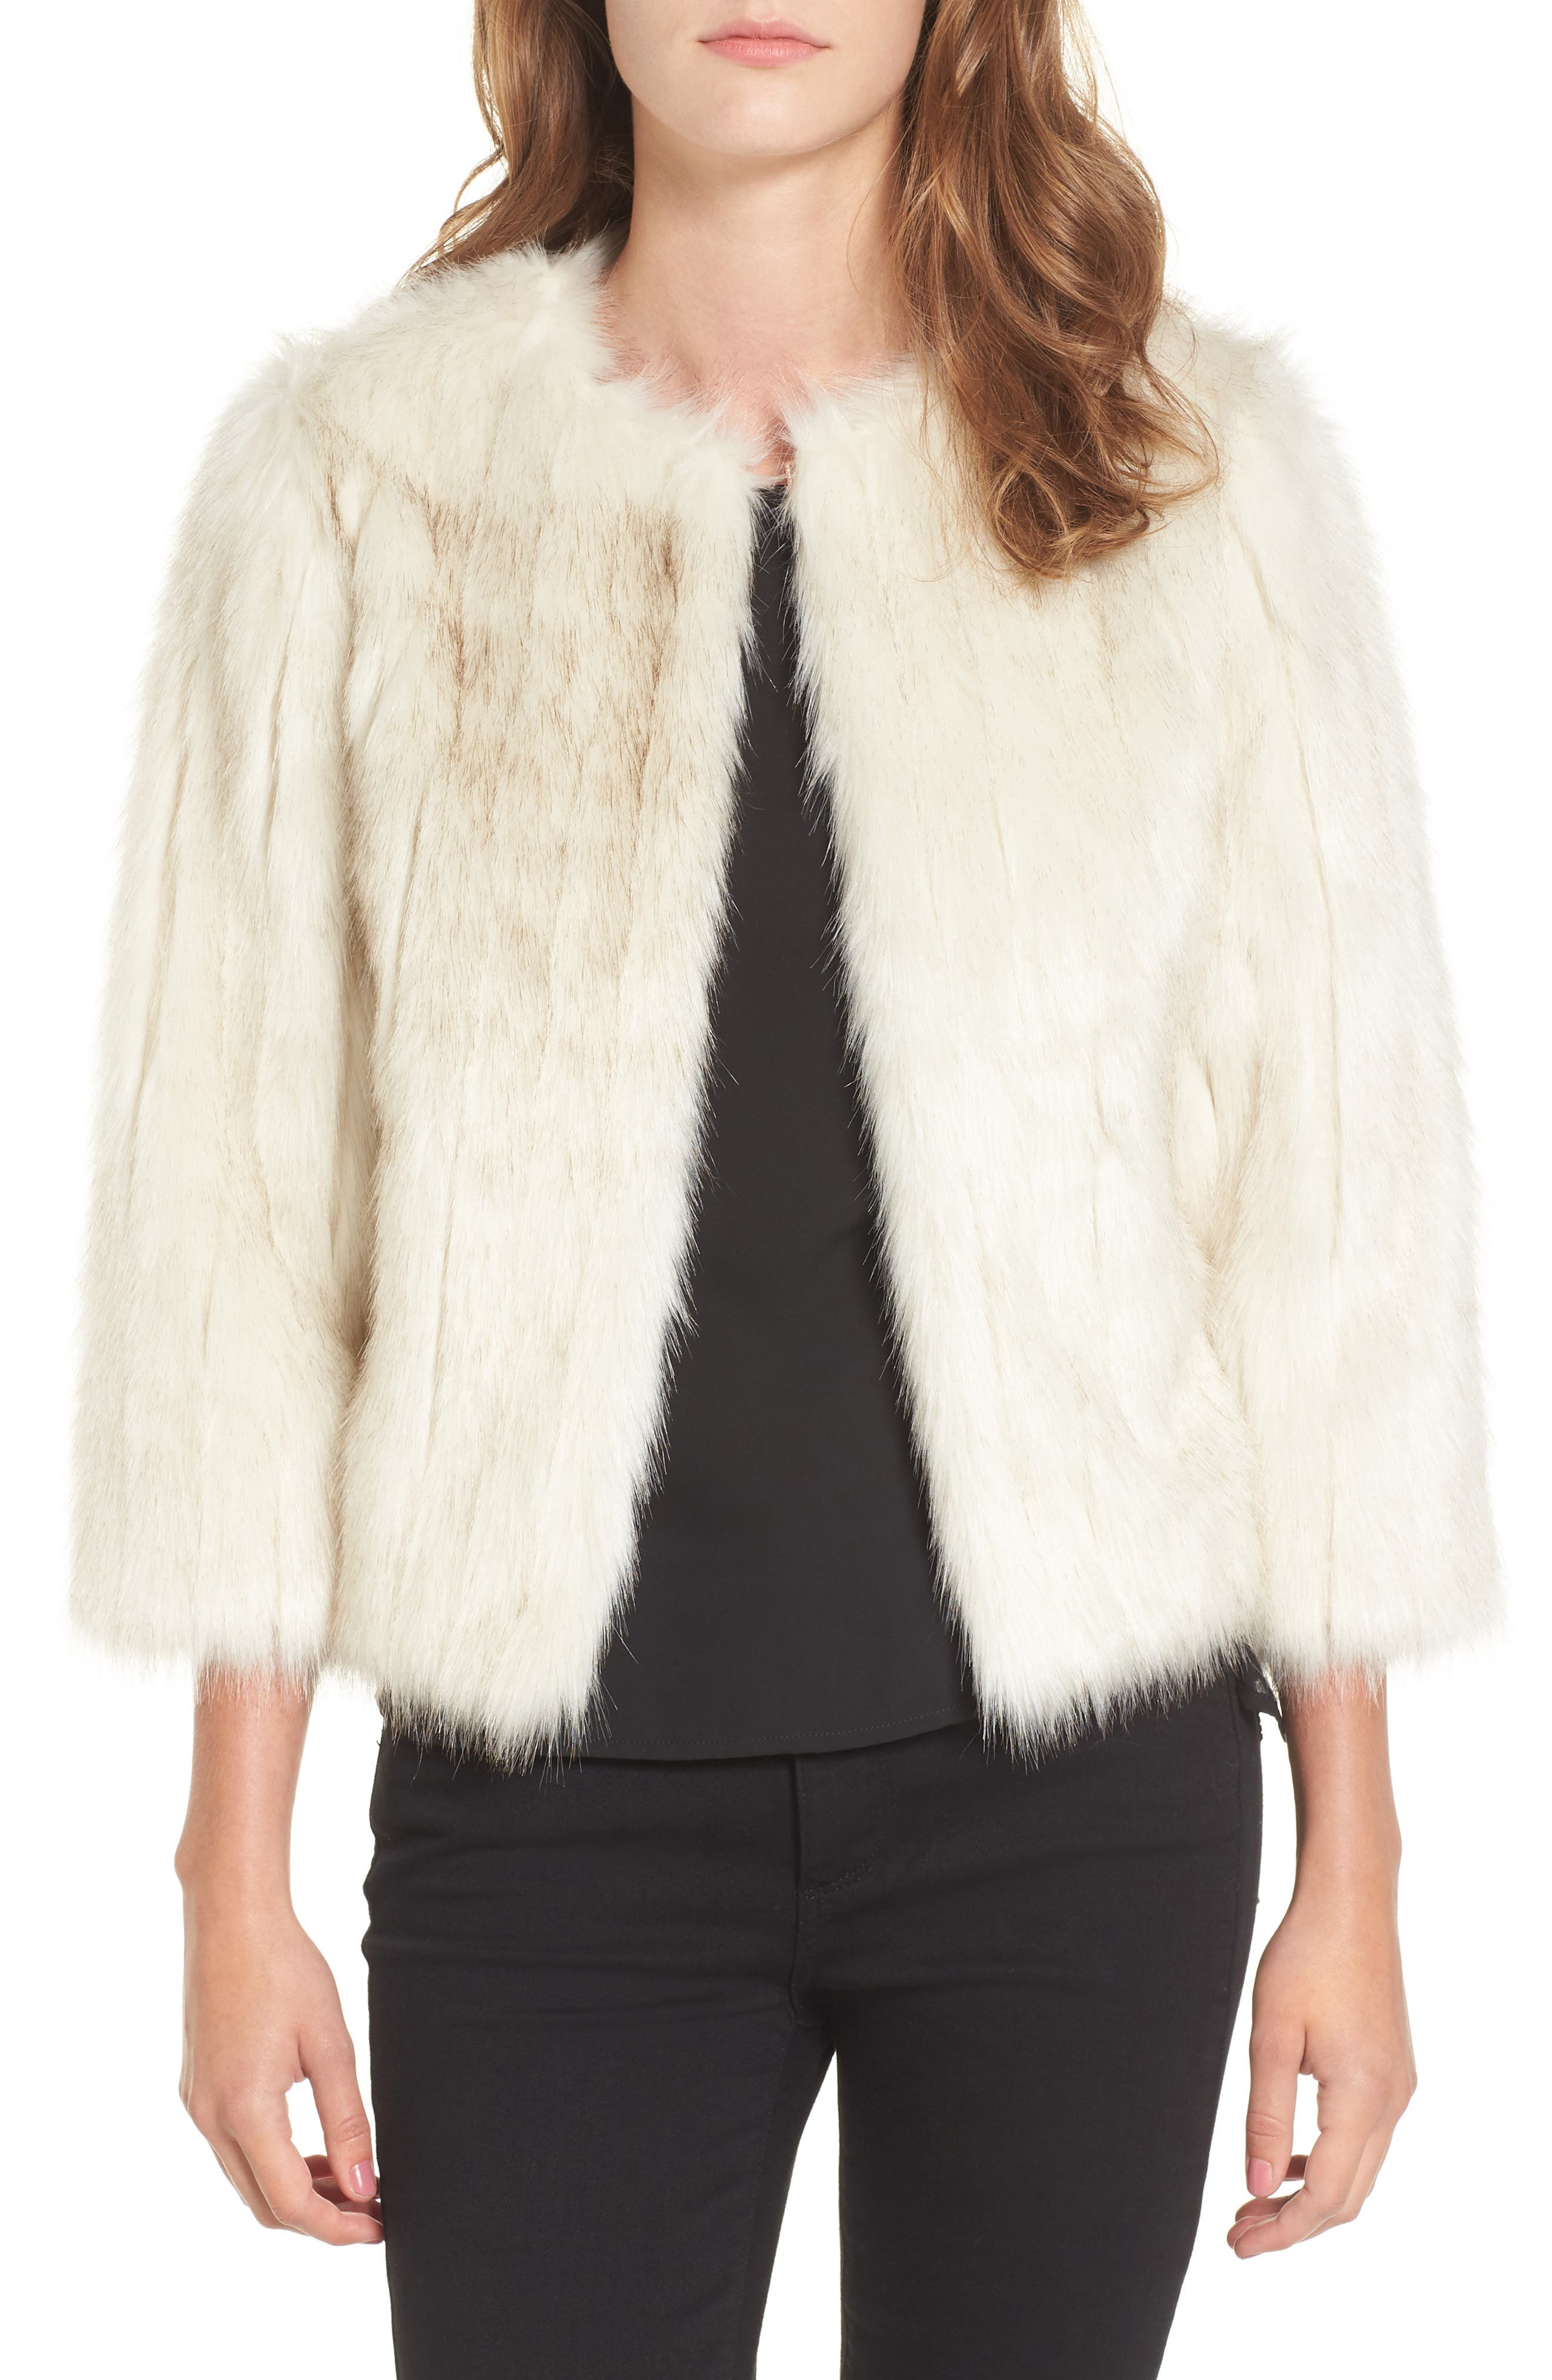 Alternate Image 1 Selected - Ted Baker London Winter Faux Fur Jacket